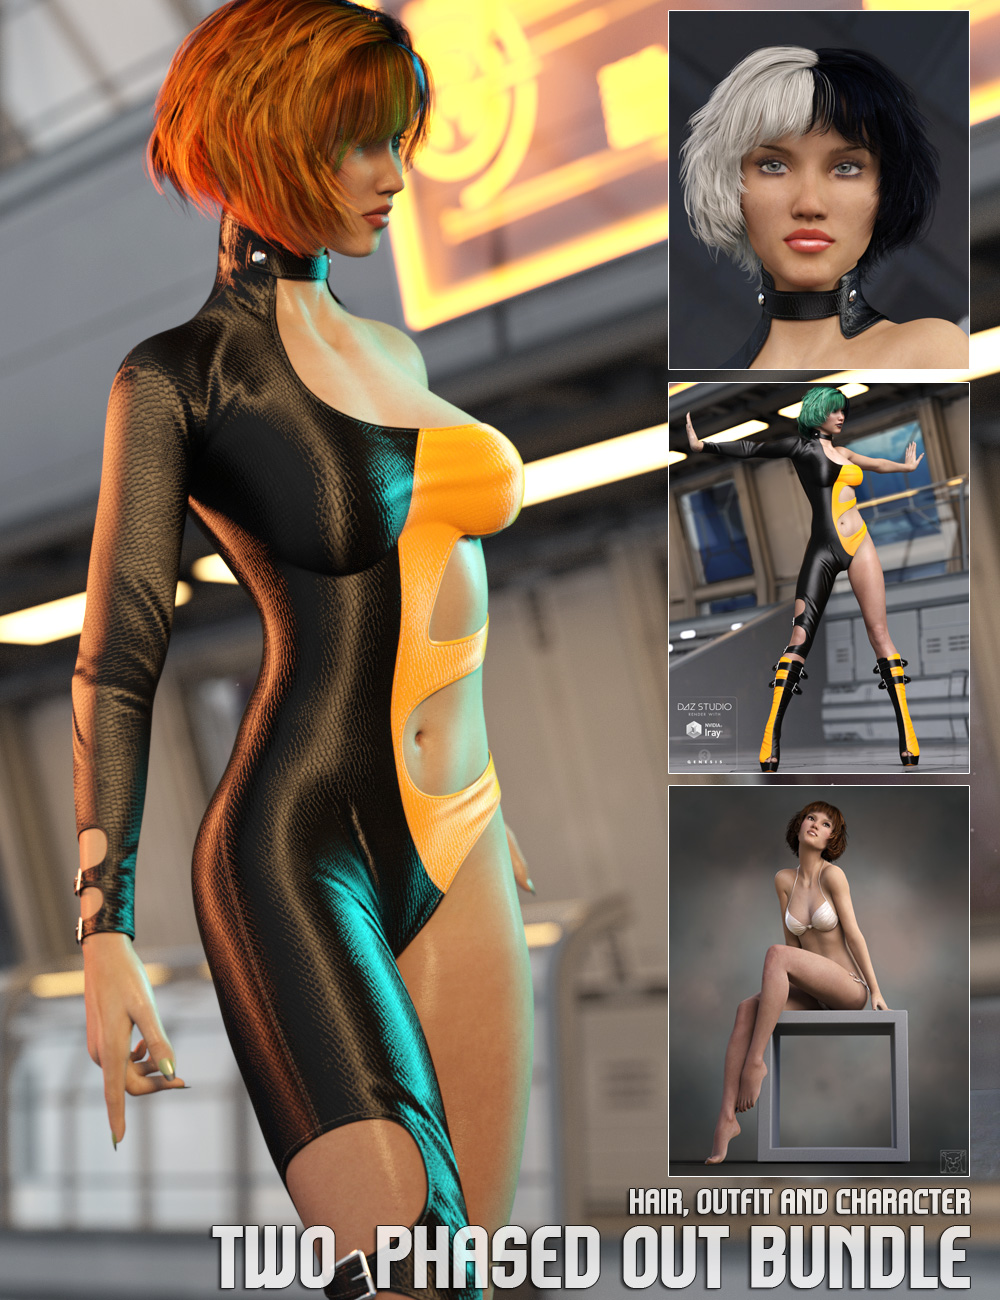 Two Phased Out Bundle by: LyonessgoldtasselLilflame, 3D Models by Daz 3D